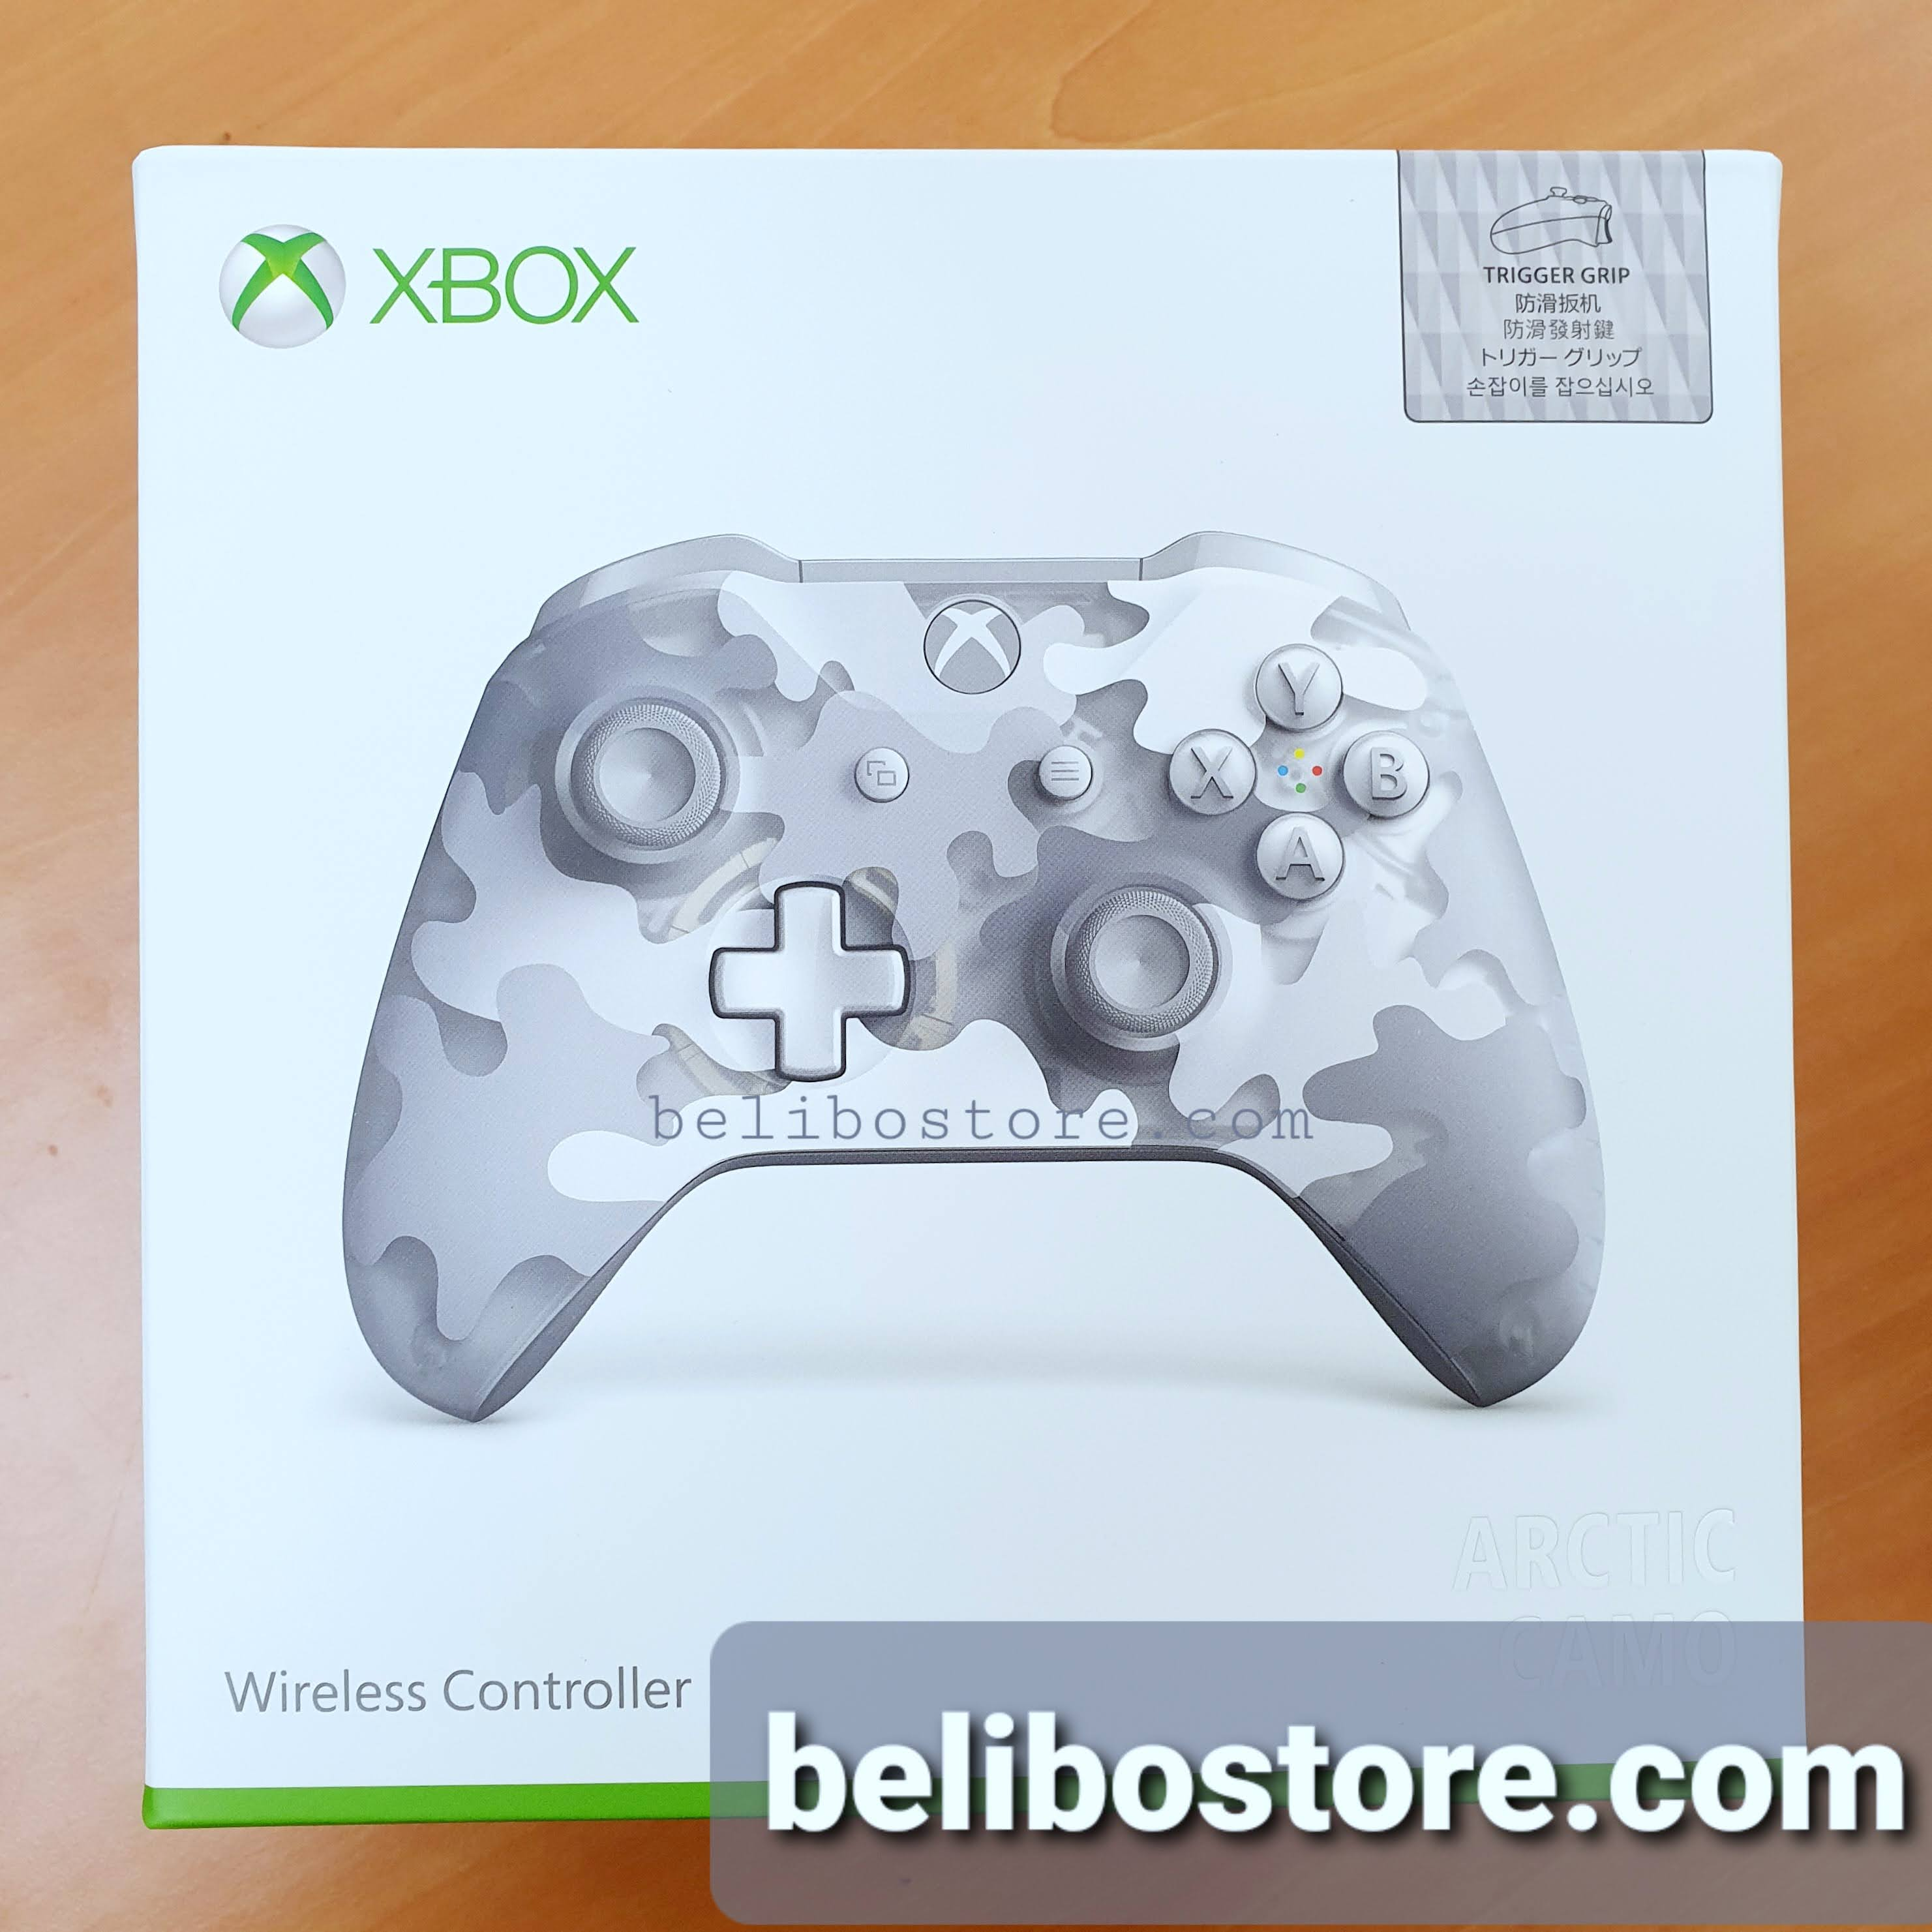 tay-cam-xbox-one-s-arctic-camo-ba-n-ma-u-da-c-bie-t-limited-chinh-hang